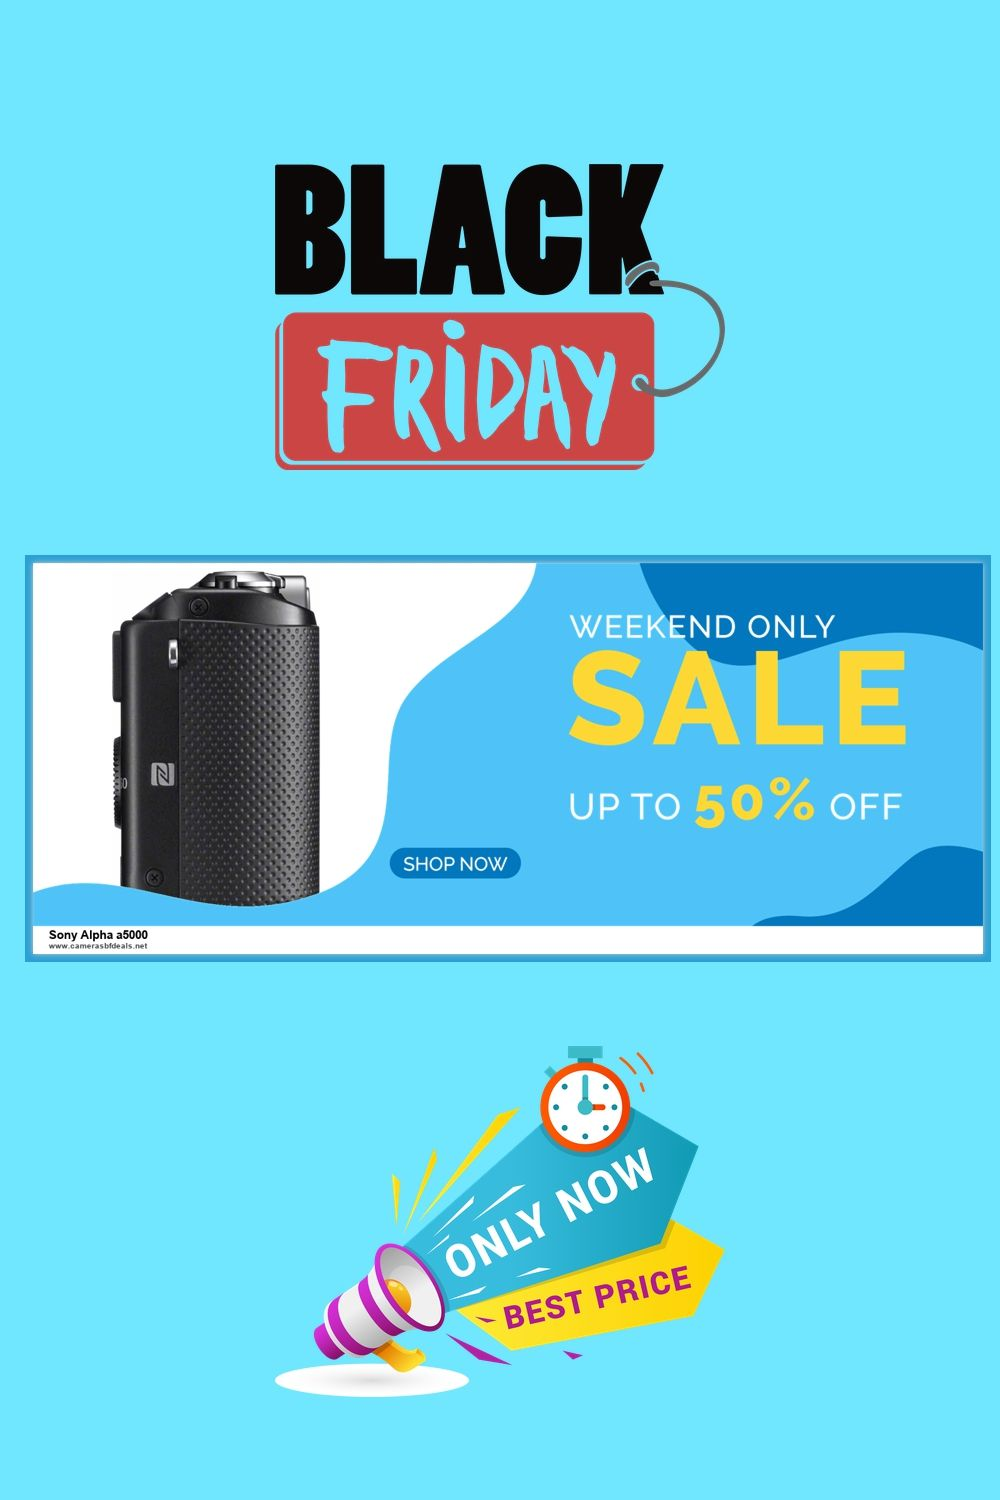 Top 9 Sony Alpha A5000 Black Friday And Cyber Monday Deals 2020 In 2020 Sony Alpha Black Friday Cyber Monday Deals